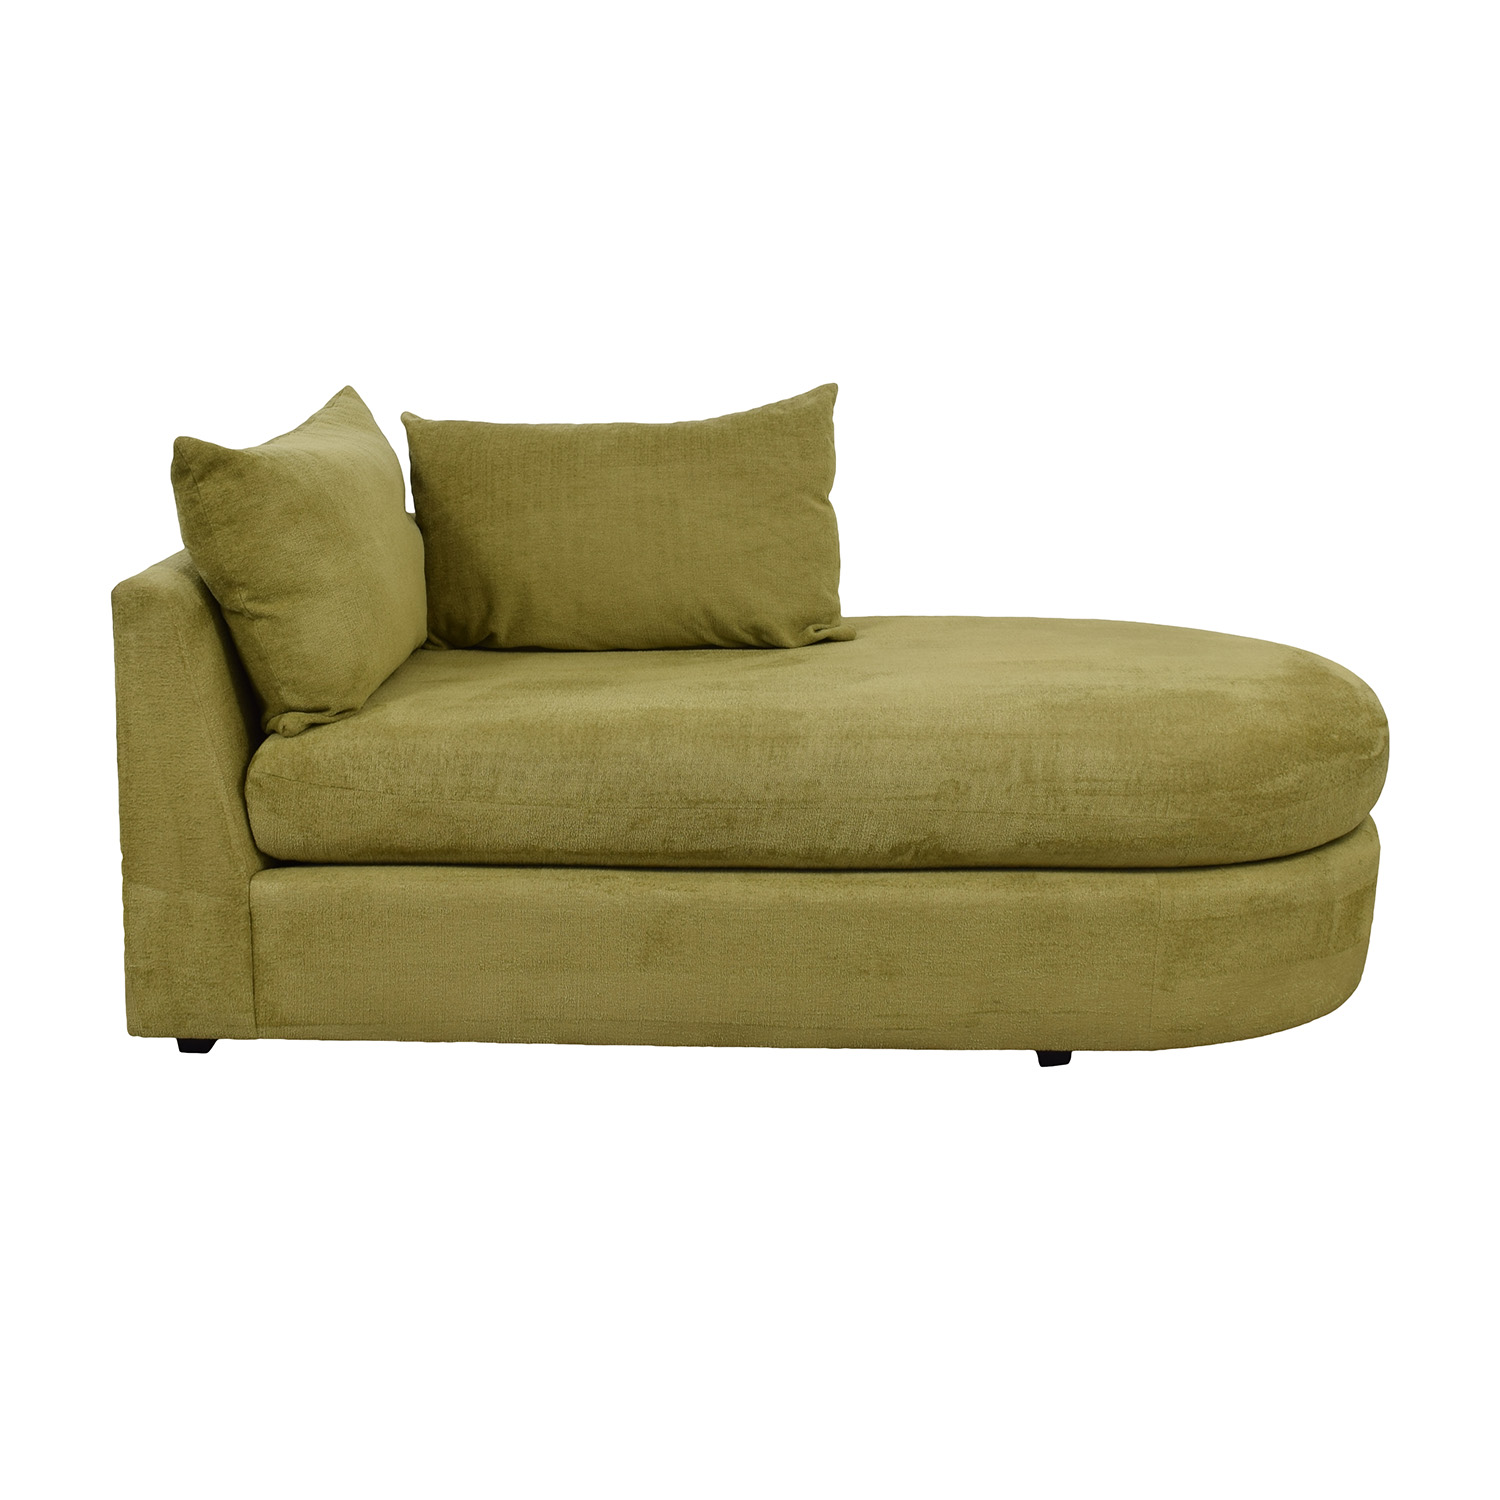 Swaim Swaim Furniture Kaleidoscope Green Chaise Lounge on sale